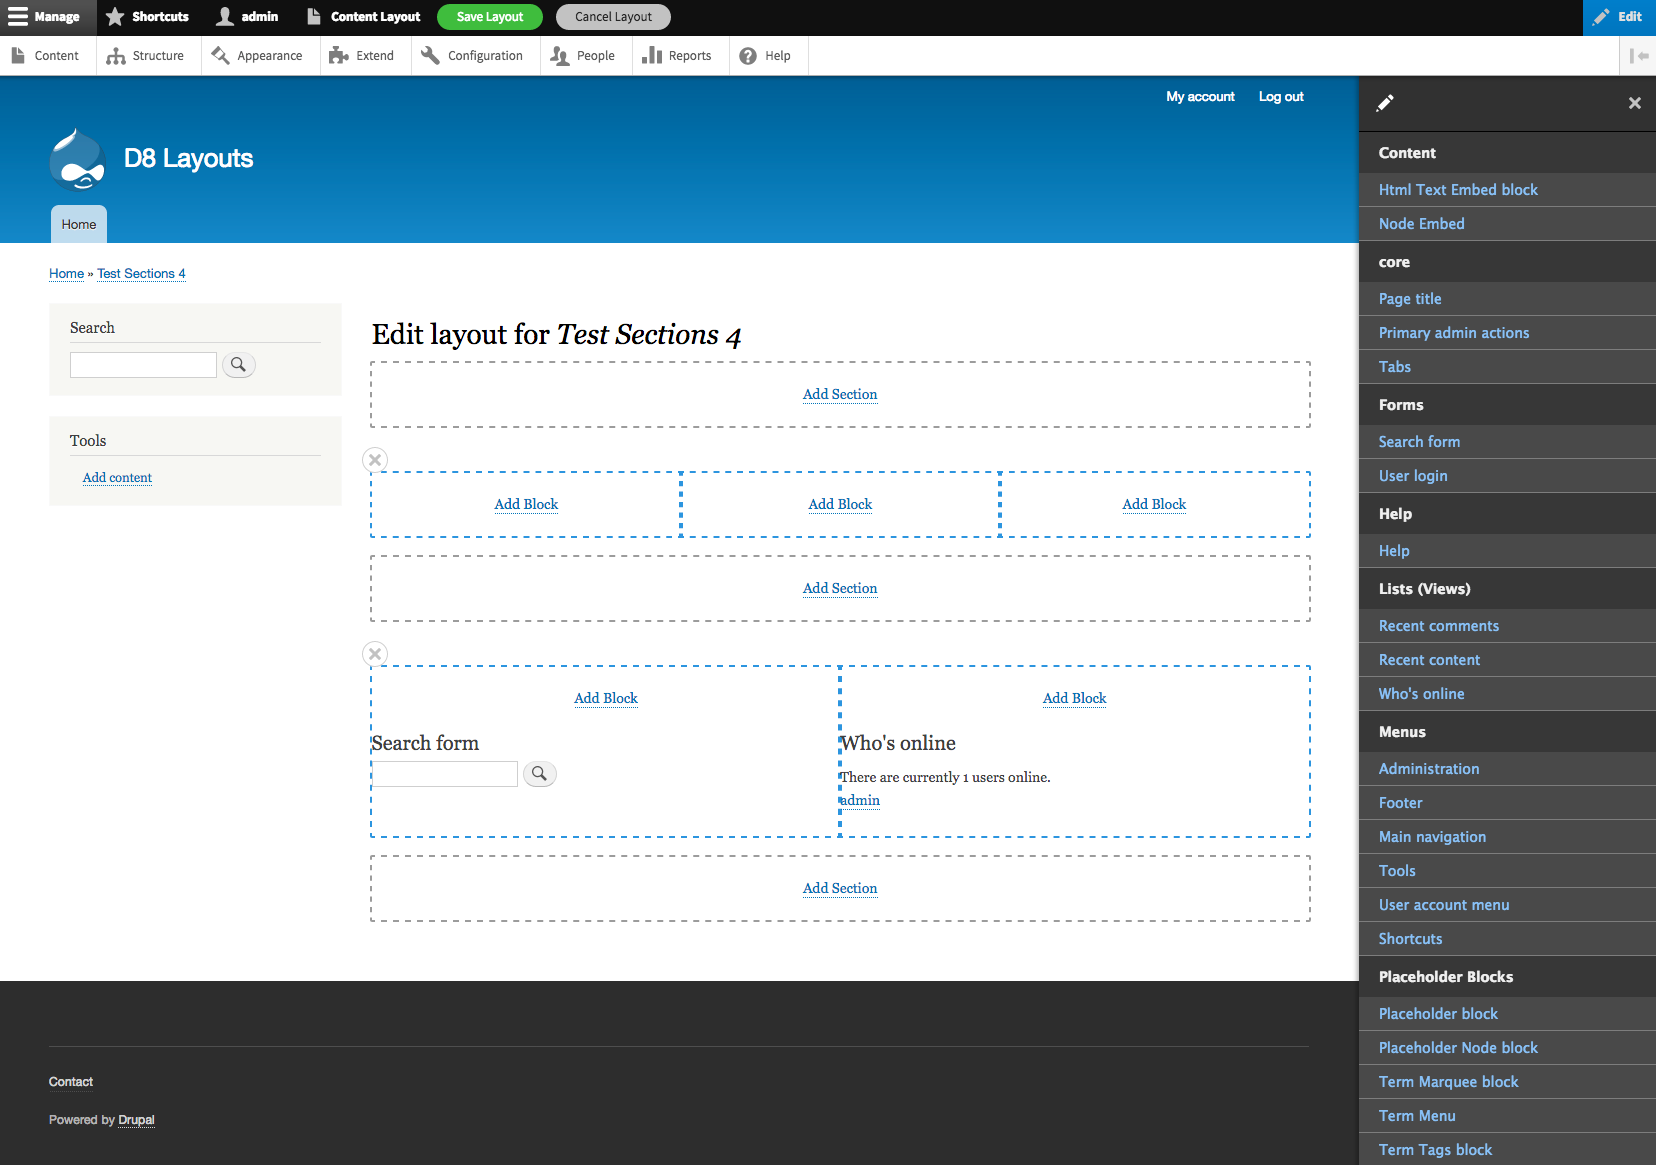 Drupal 8 lay-out interface